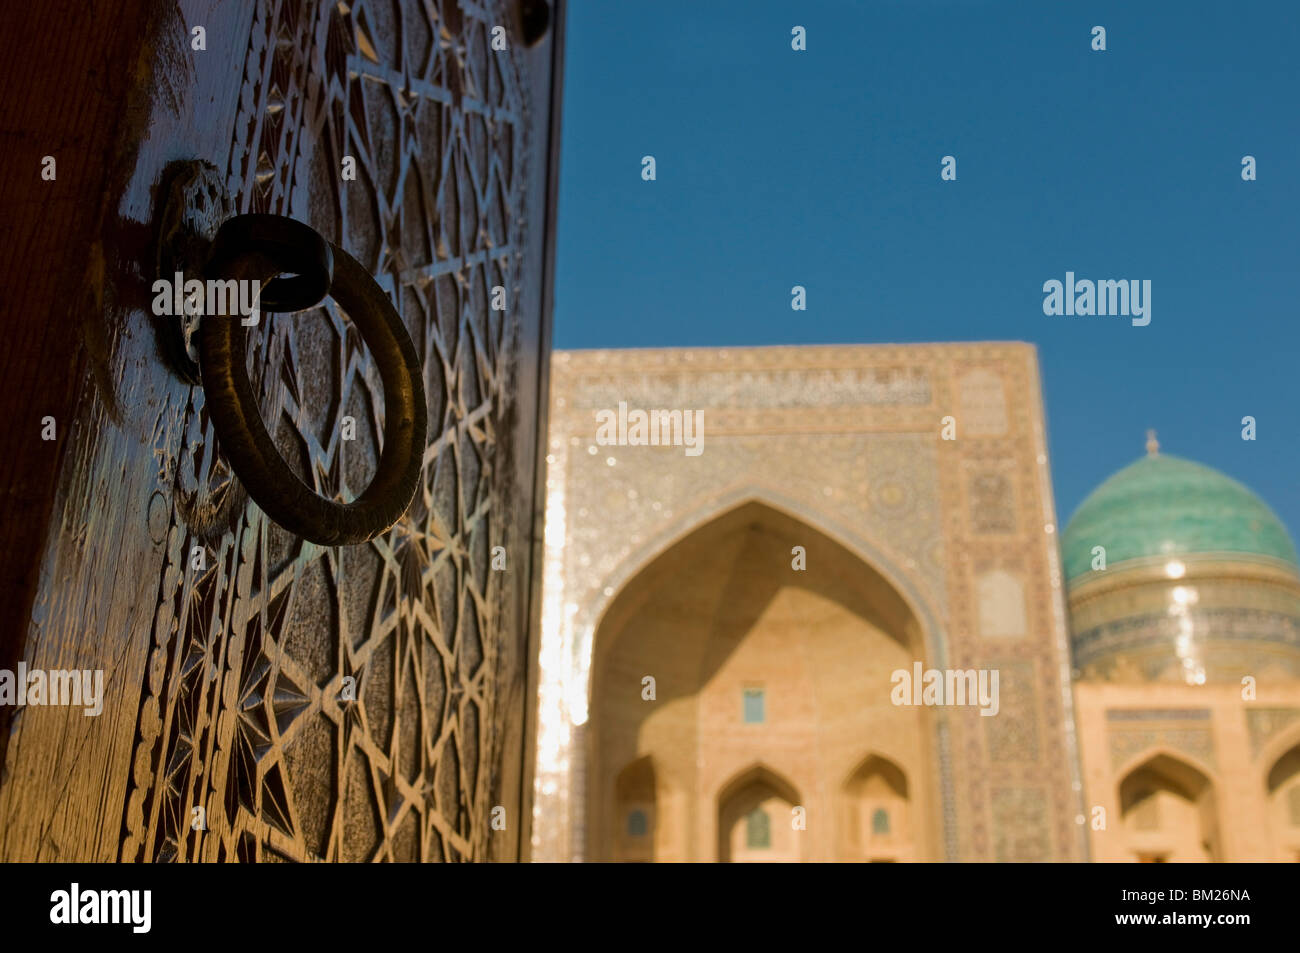 Mir-i-Arab Medressa, UNESCO World Heritage Site, Bukhara, Uzbekistan, Central Asia - Stock Image